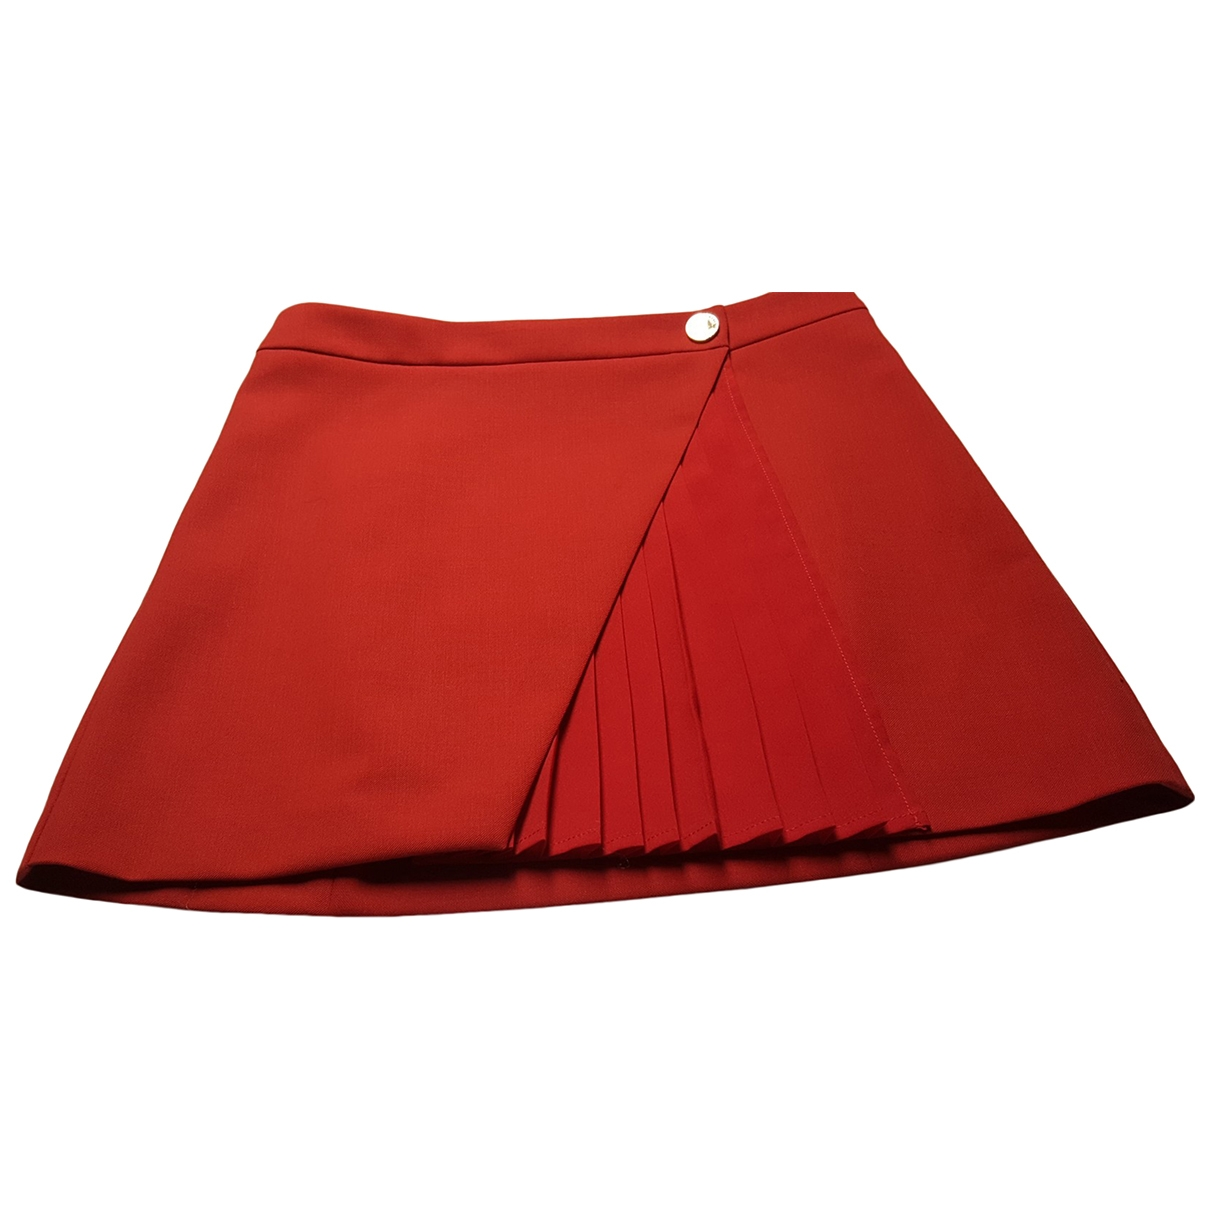 Patrizia Pepe \N Red Cotton skirt for Women 40 IT